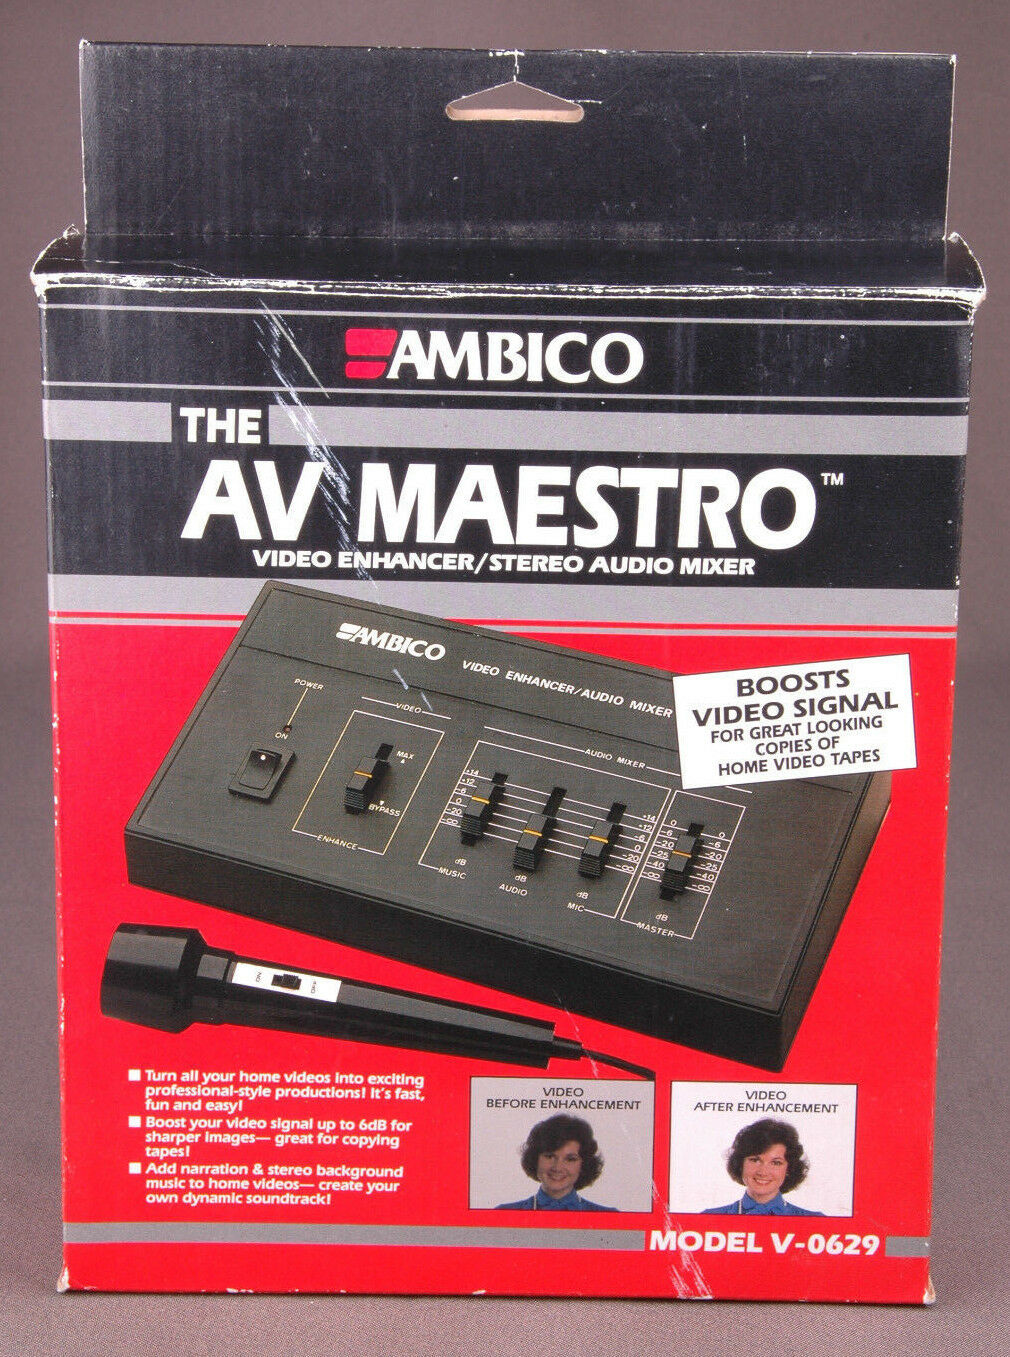 Audio For Video Cameras & Photo Ambico Av Maestro V0629 Video Enhancer Stereo Audio Mixer Reasonable Price